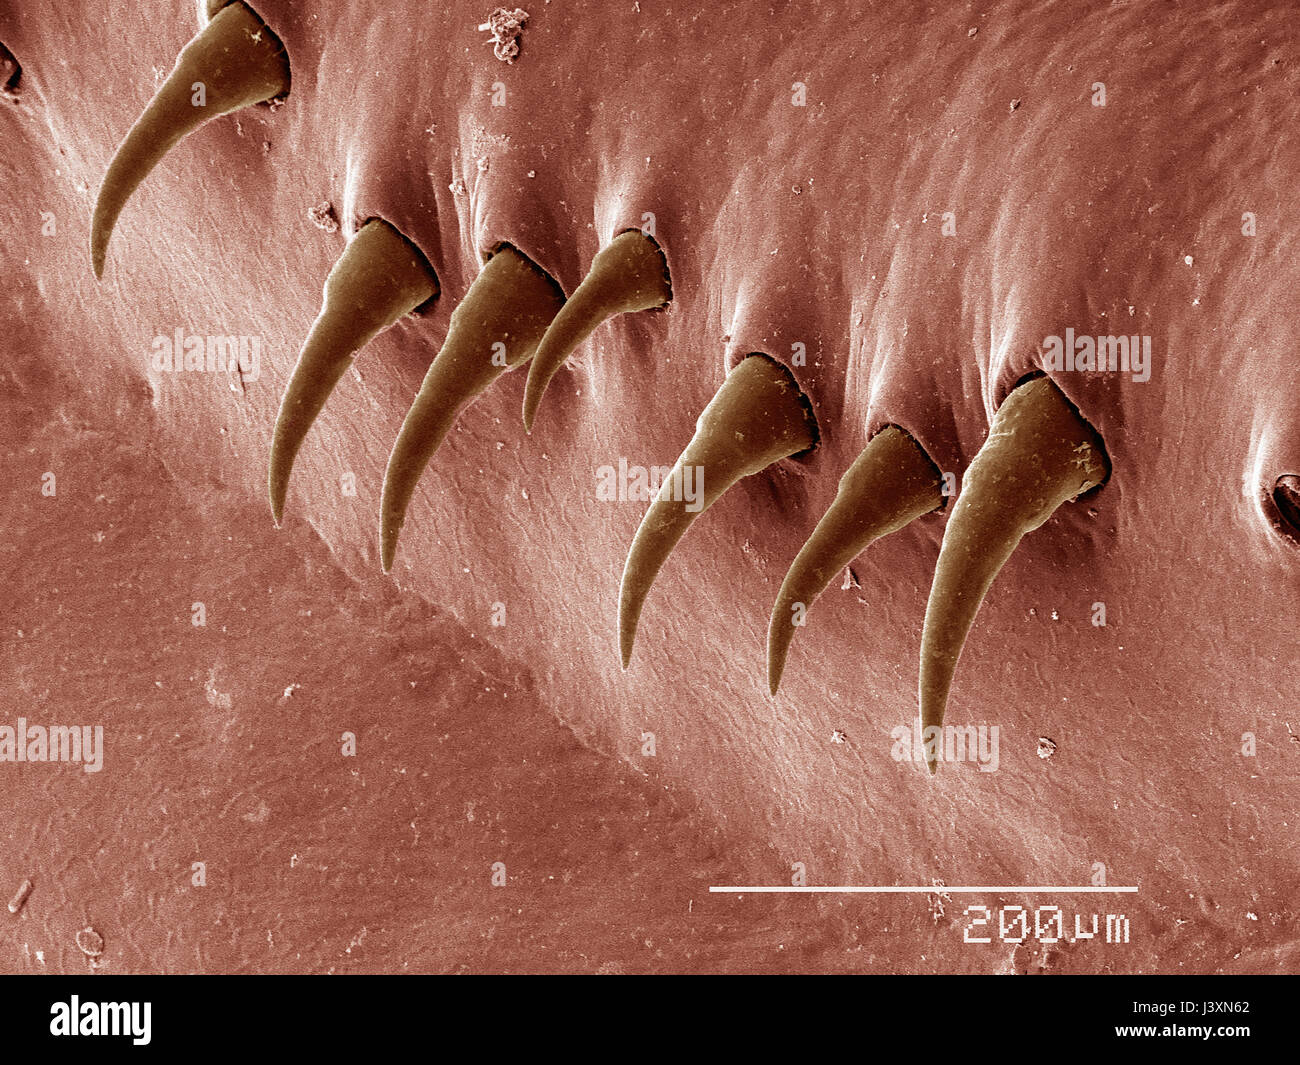 Stout spines on the gill rakers of a crayfish (Crustacea: Decapoda) imaged in a scanning electron microscope - Stock Image